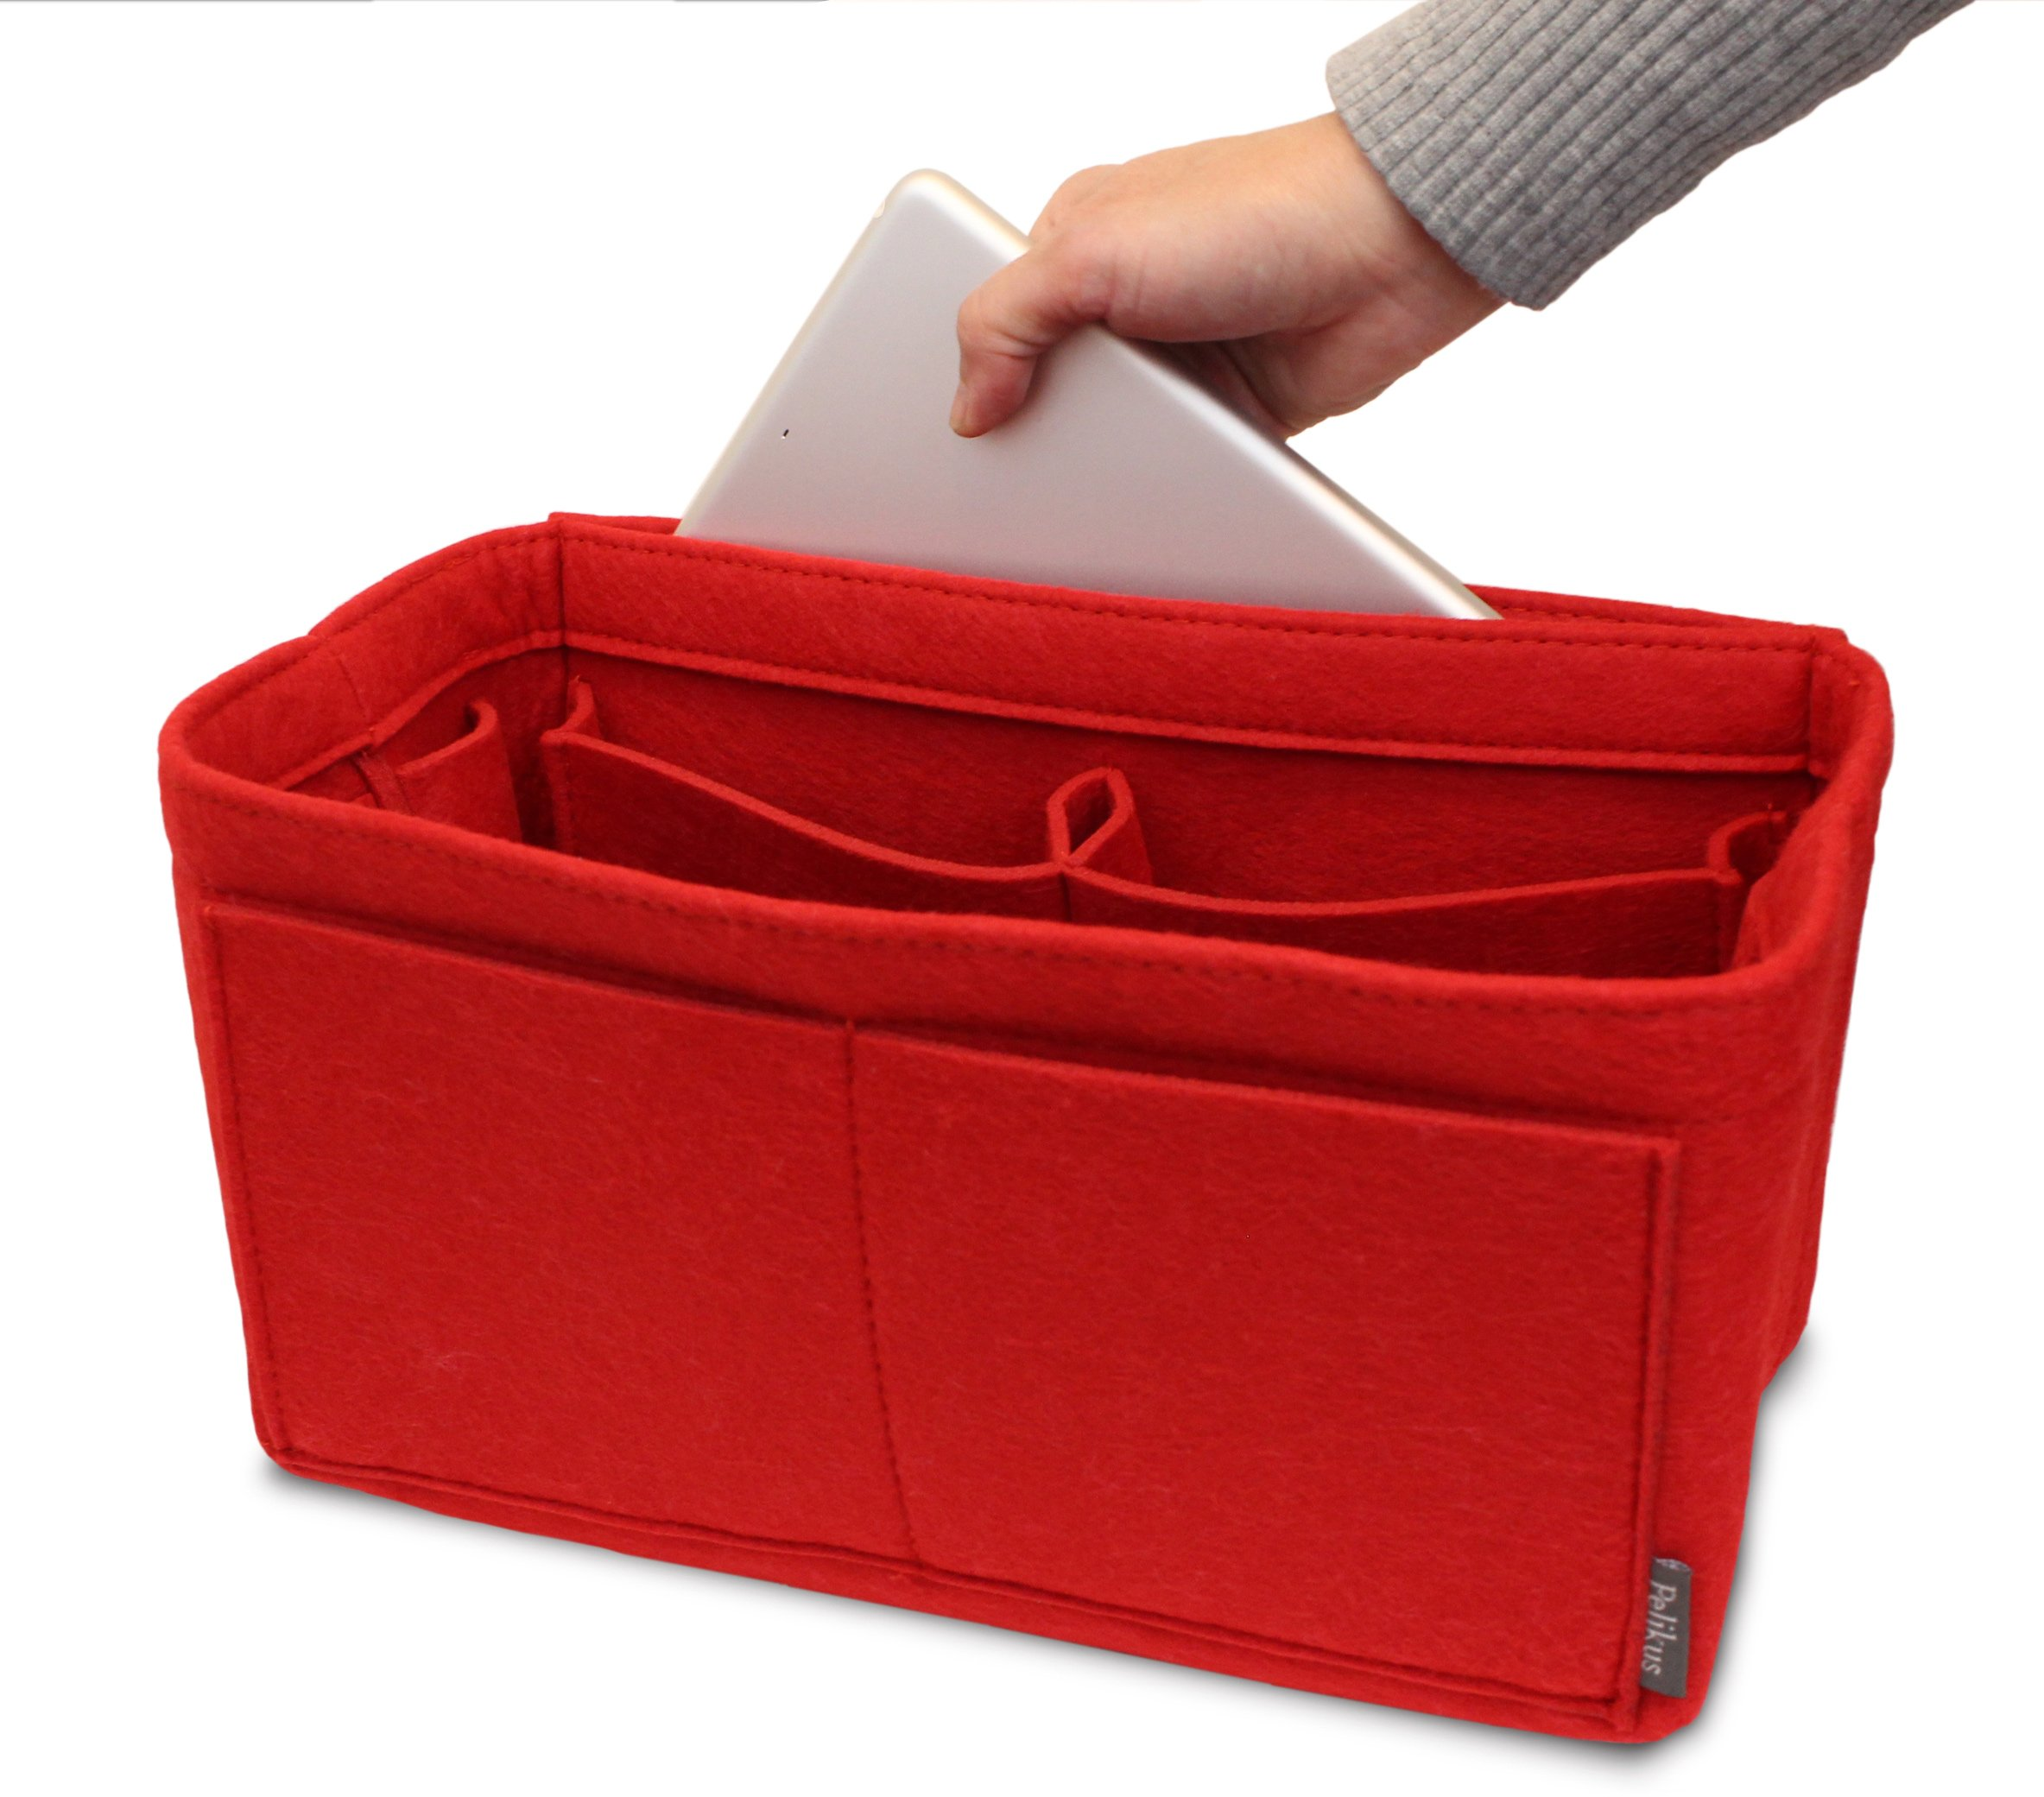 Pelikus Felt Purse & Tote Organizer Insert/Multi-Pocket Handbag Shaper (Large, Red) by Pelikus (Image #5)